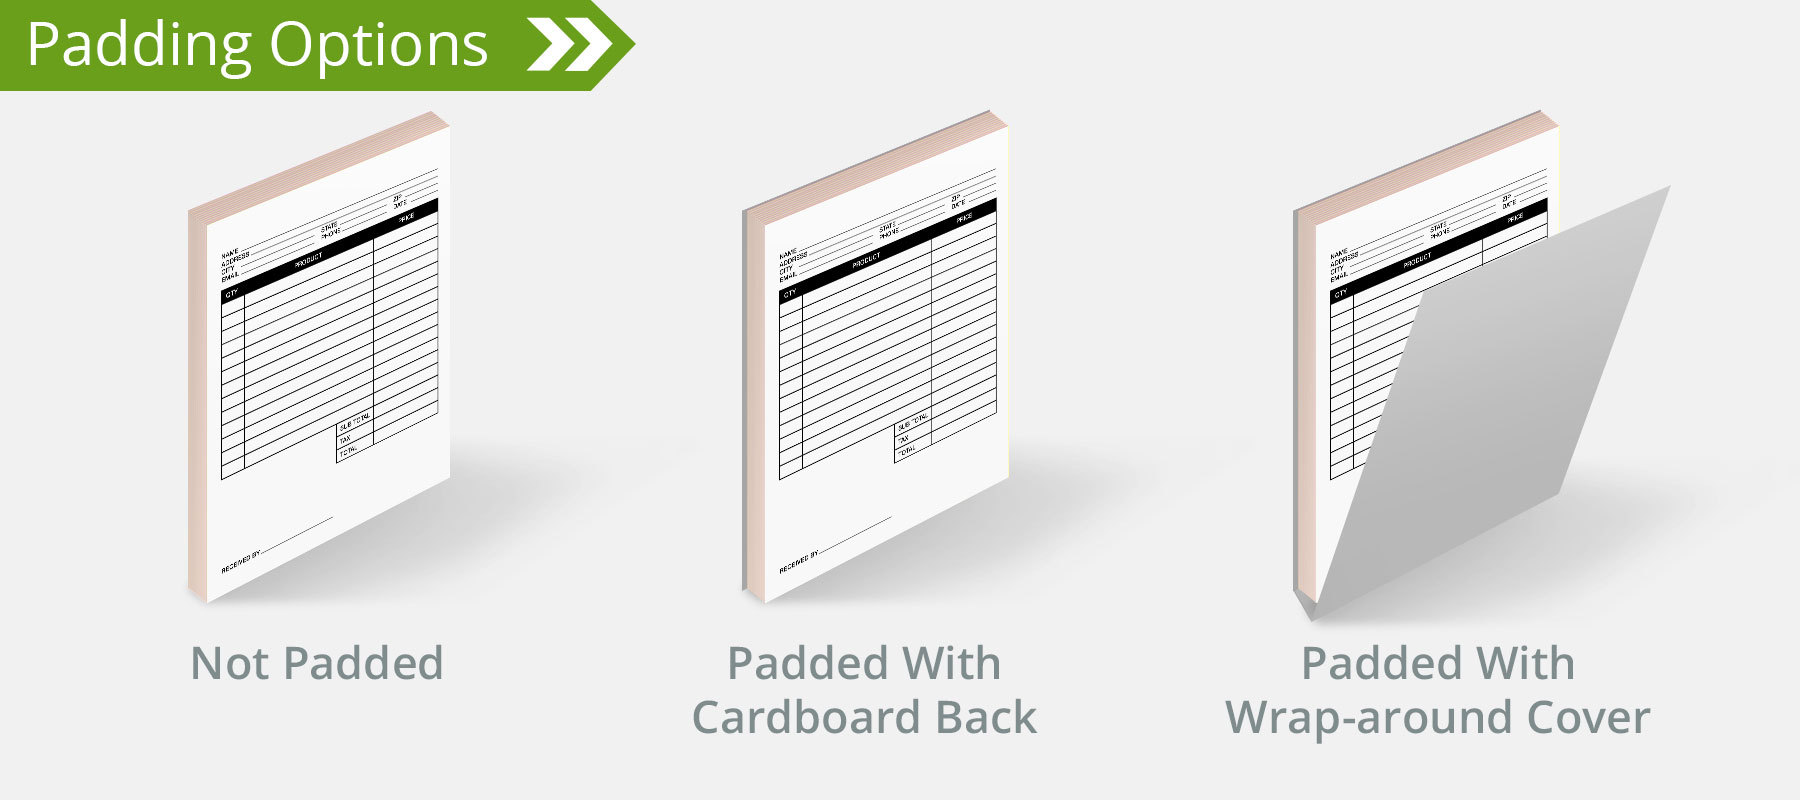 Carbonless Forms Padding Options - NCR Books